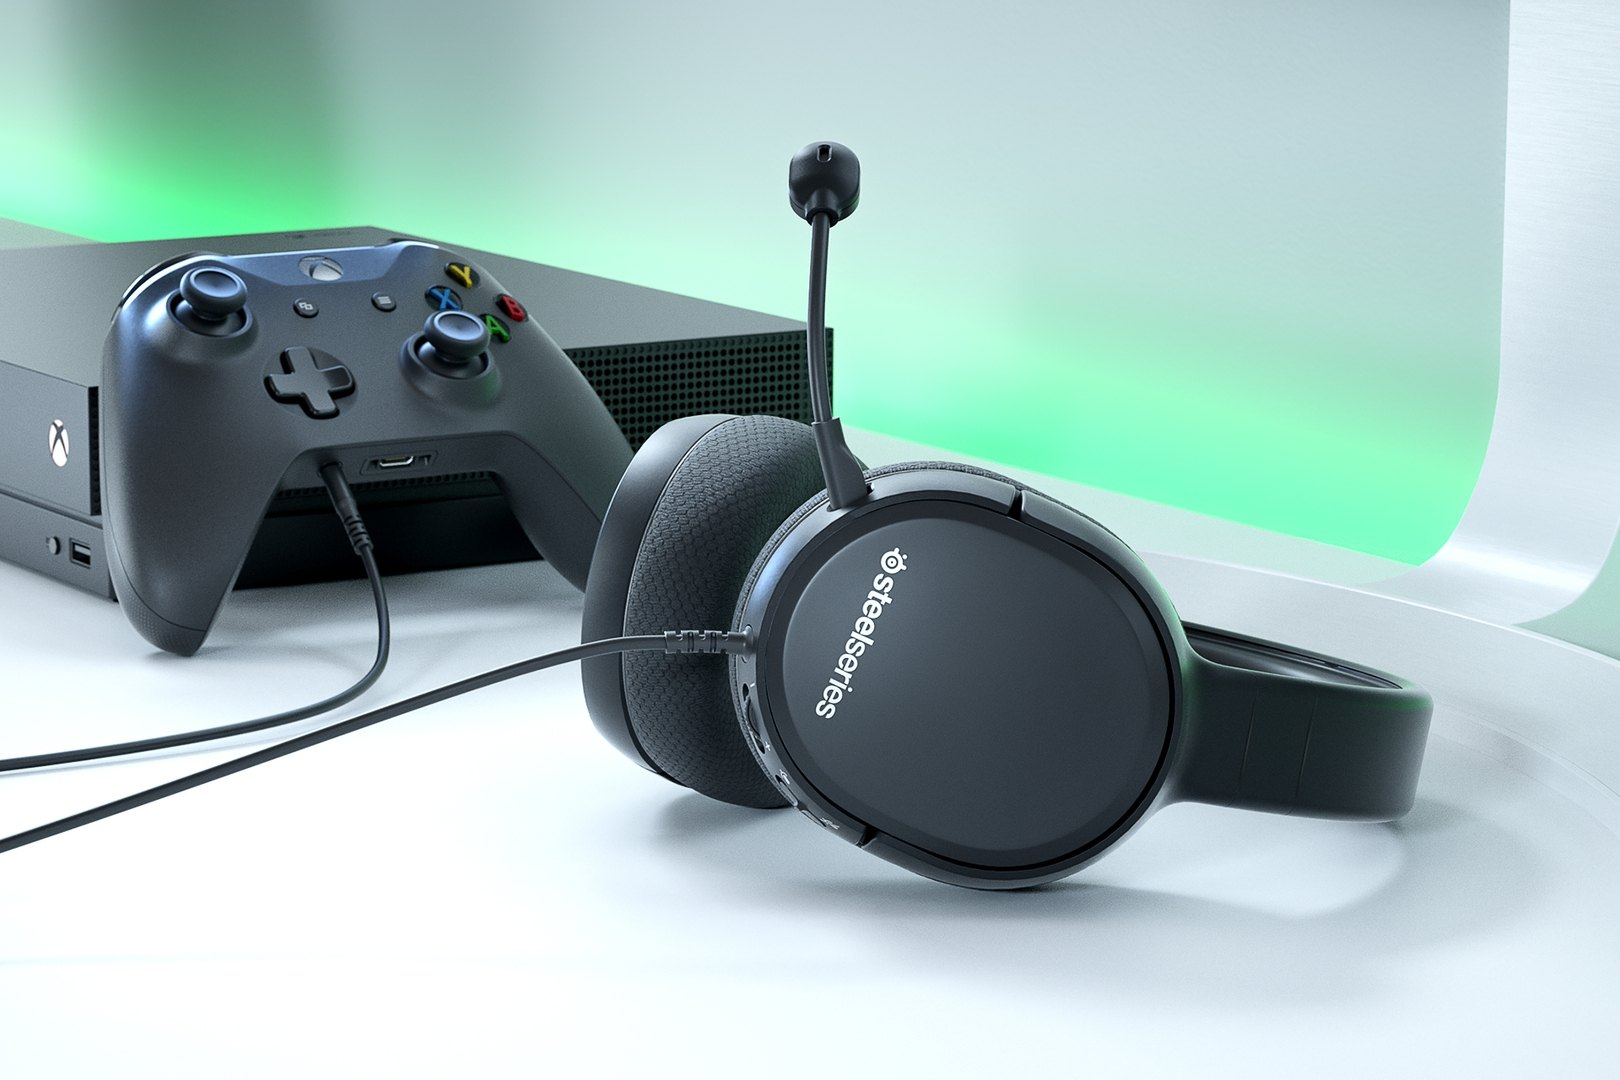 Arctis 1 for Xbox gaming headset on table with Xbox game console next to it